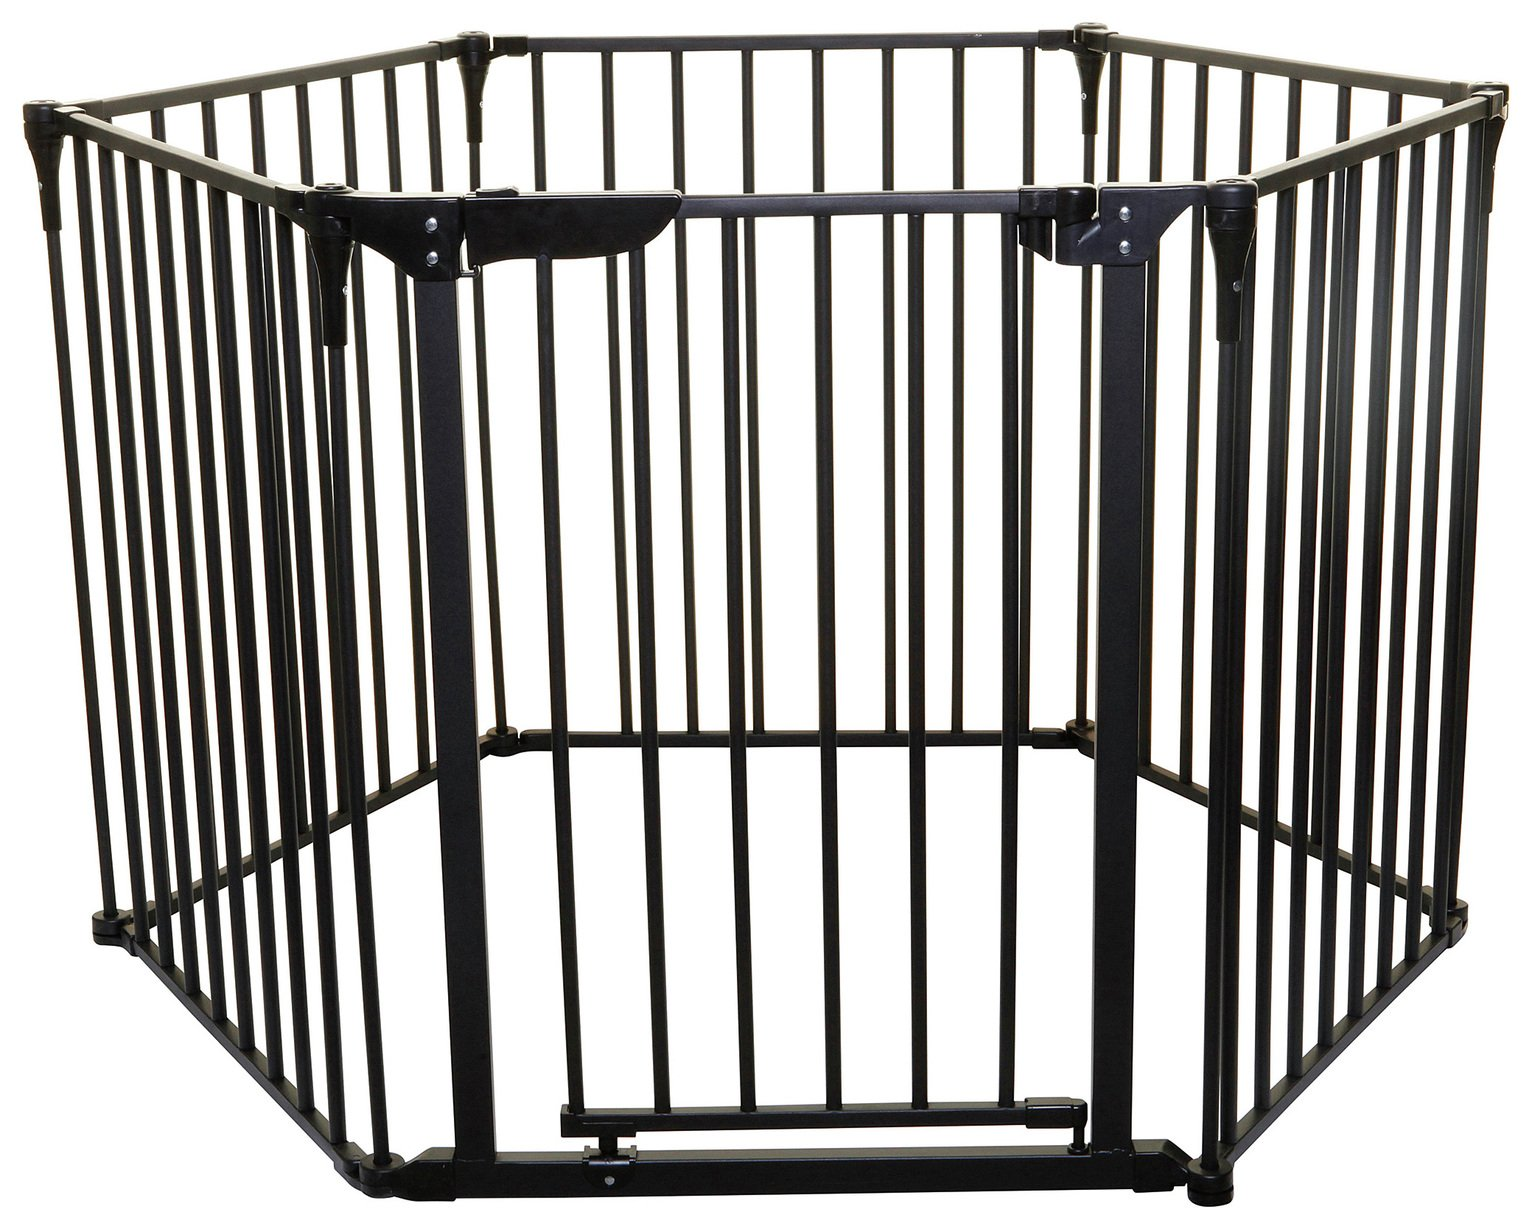 Dreambaby Royale Converta 3-in-1 Playpen Gate - Black